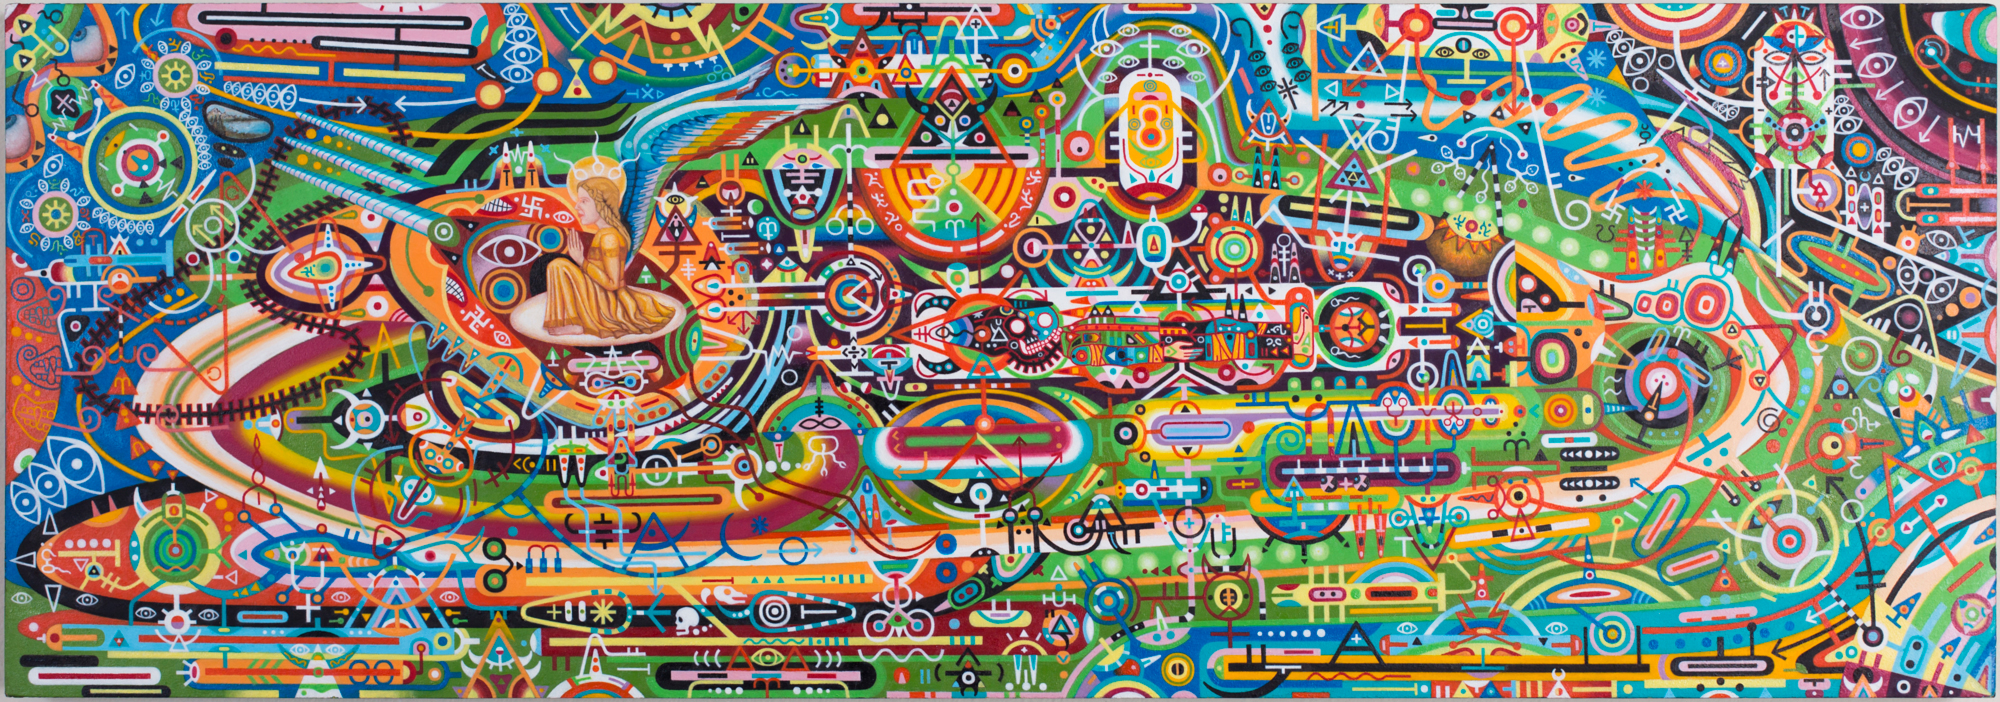 """Brahmastra For a New Age (UFO/Time Machine), 2010-2013. 9"""" x 27"""". Oil on panel. Photo by Ryan Collerd."""